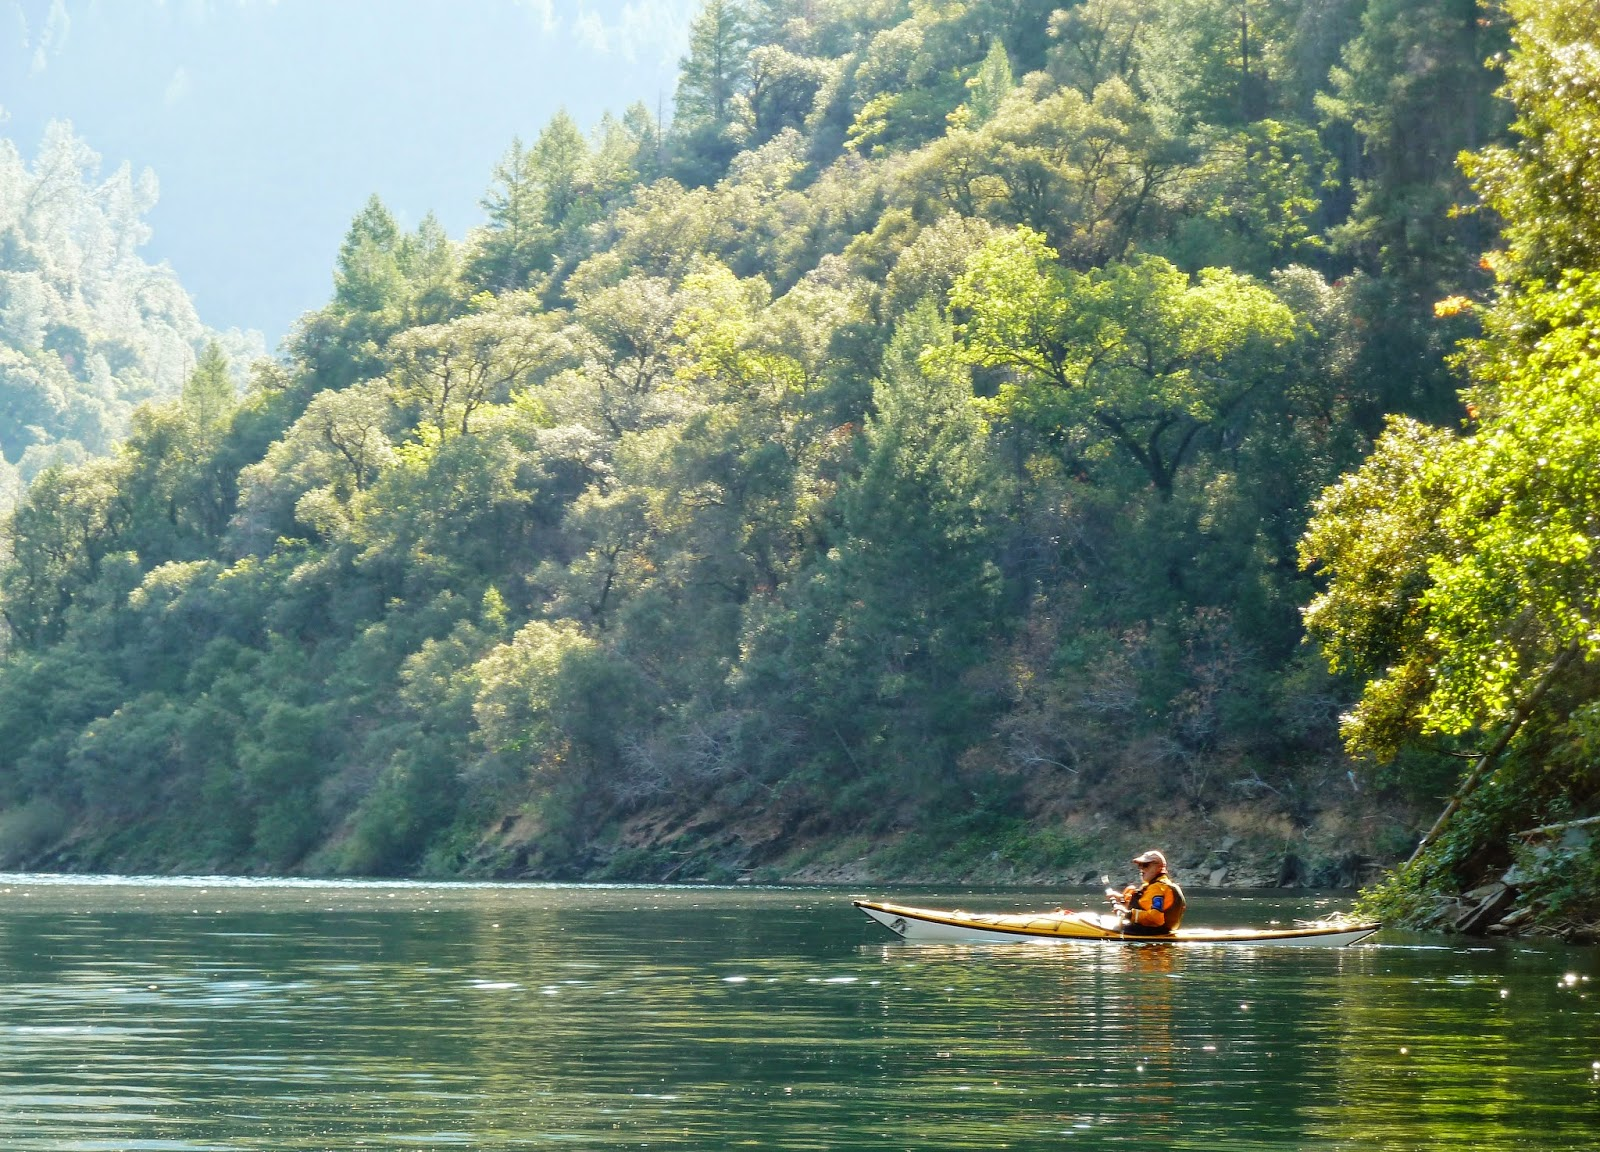 NORCAL YAK: Kayaking paradise found, then nearly lost to fire